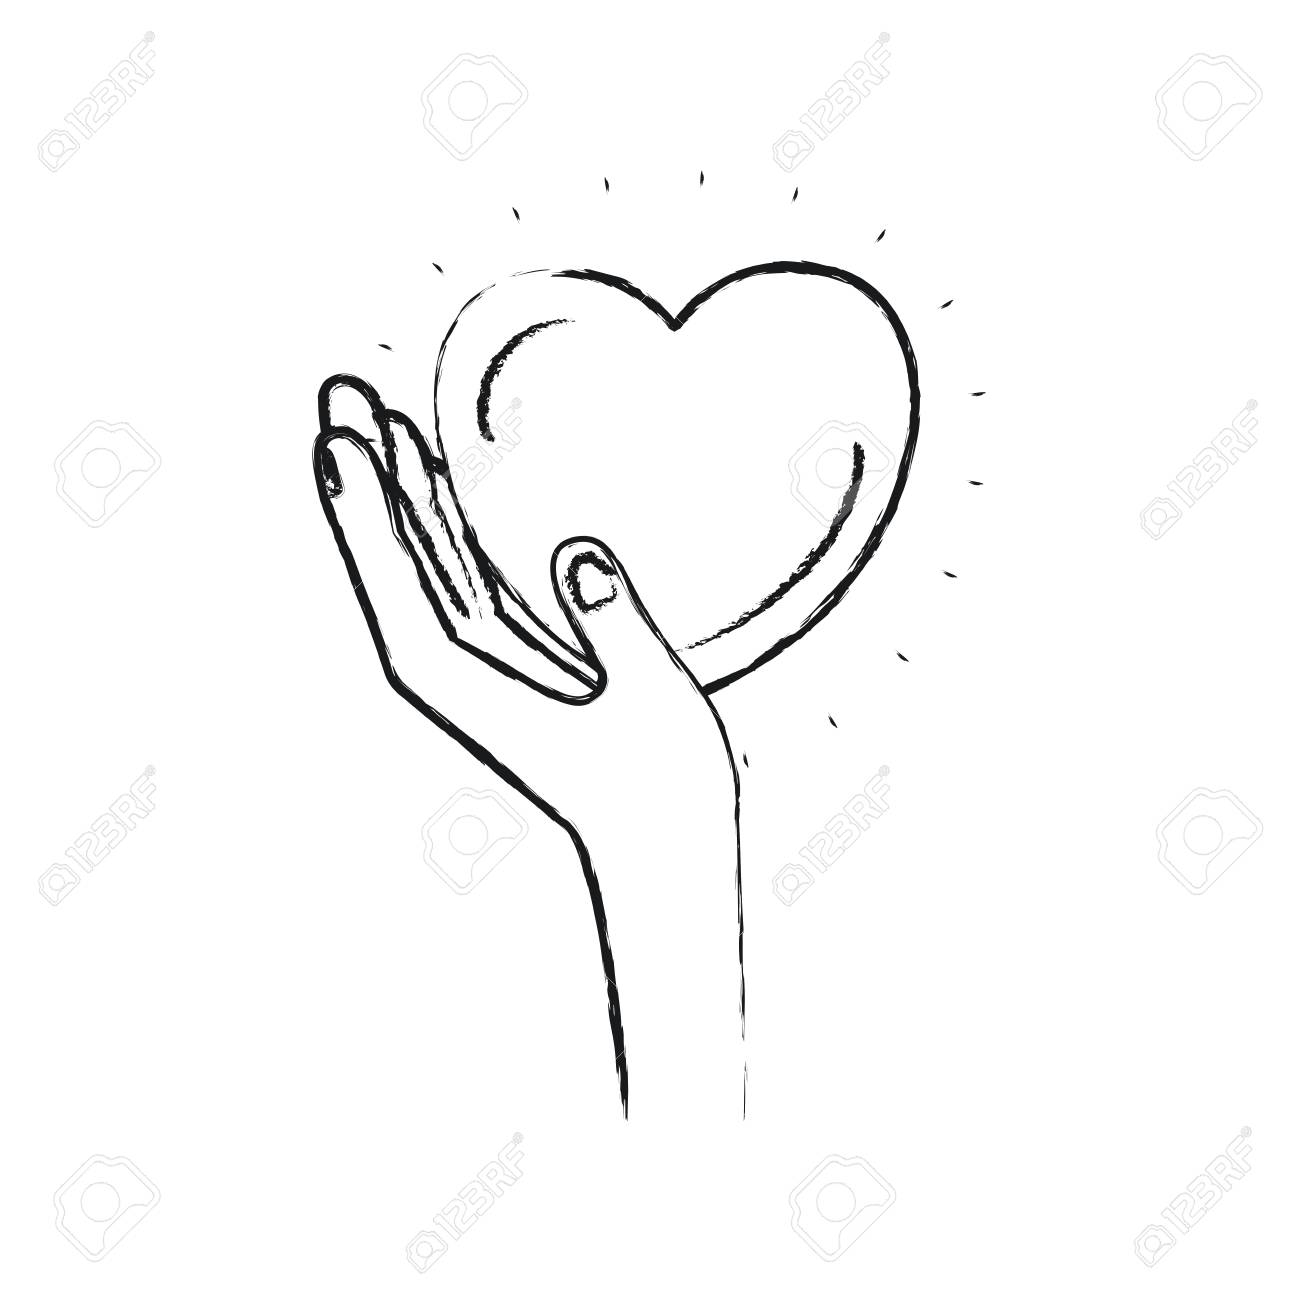 Blurred Silhouette Left Hand Holding In Palm A Heart Charity